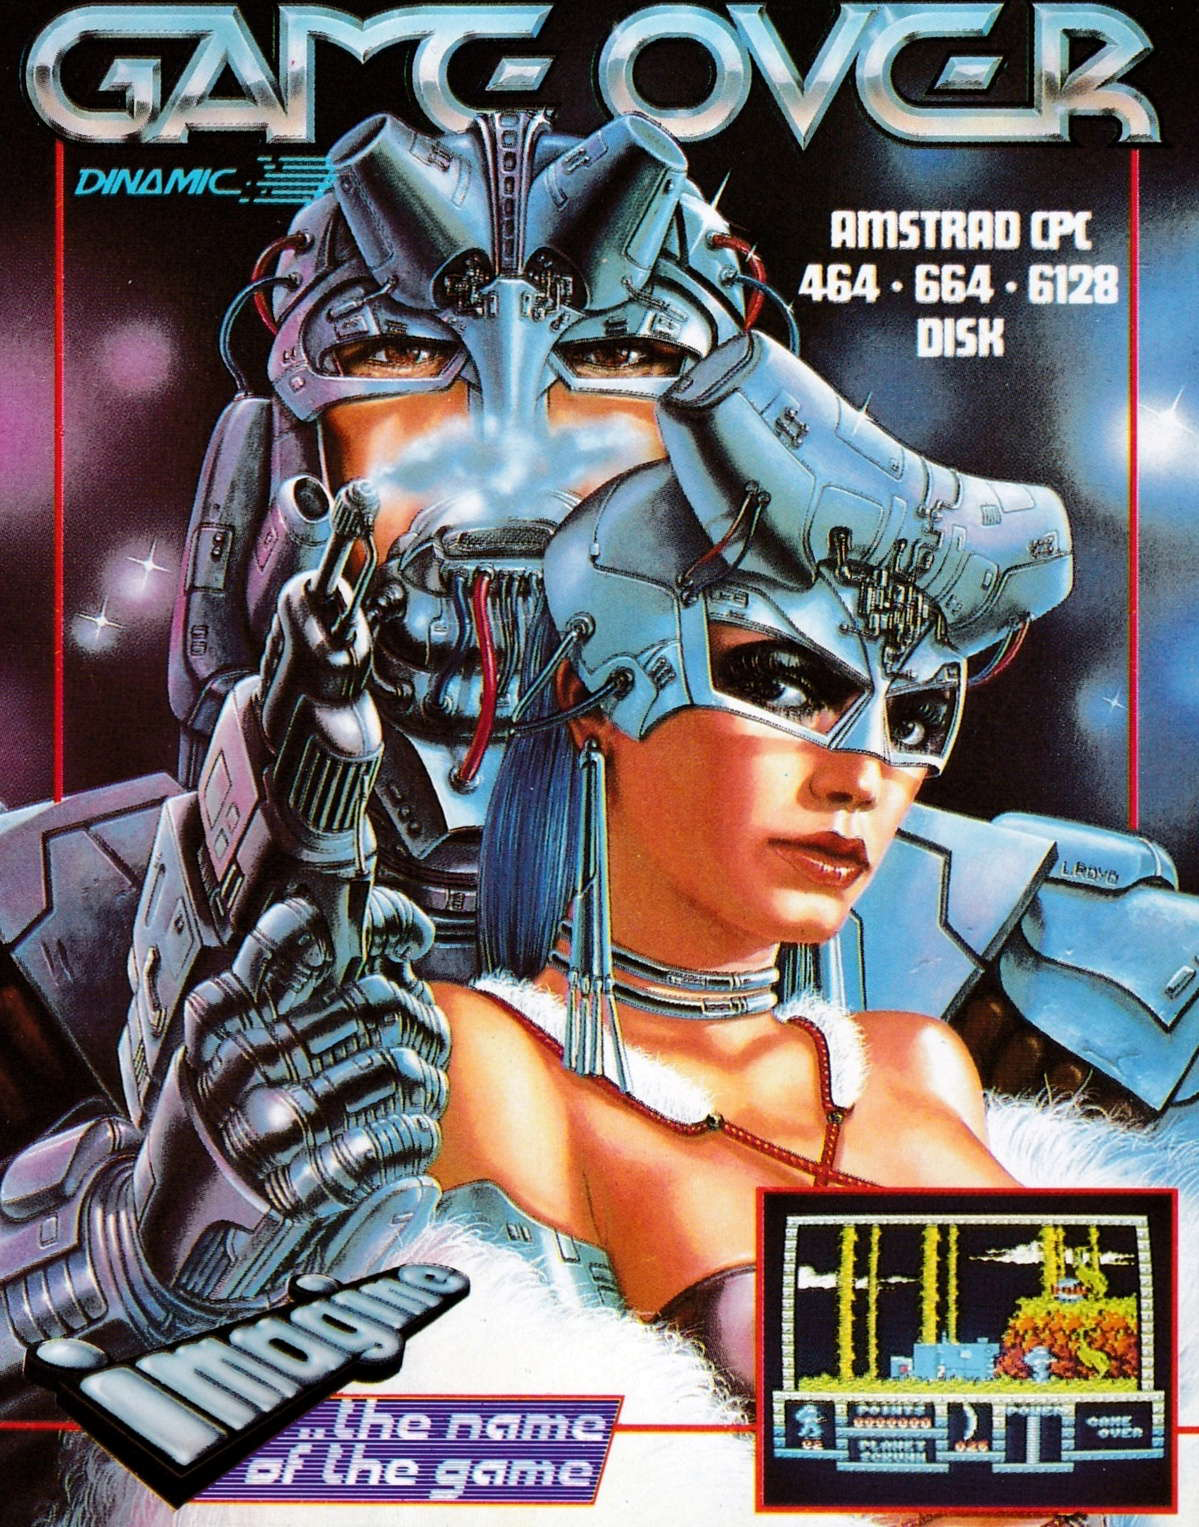 cover of the Amstrad CPC game Game Over  by GameBase CPC